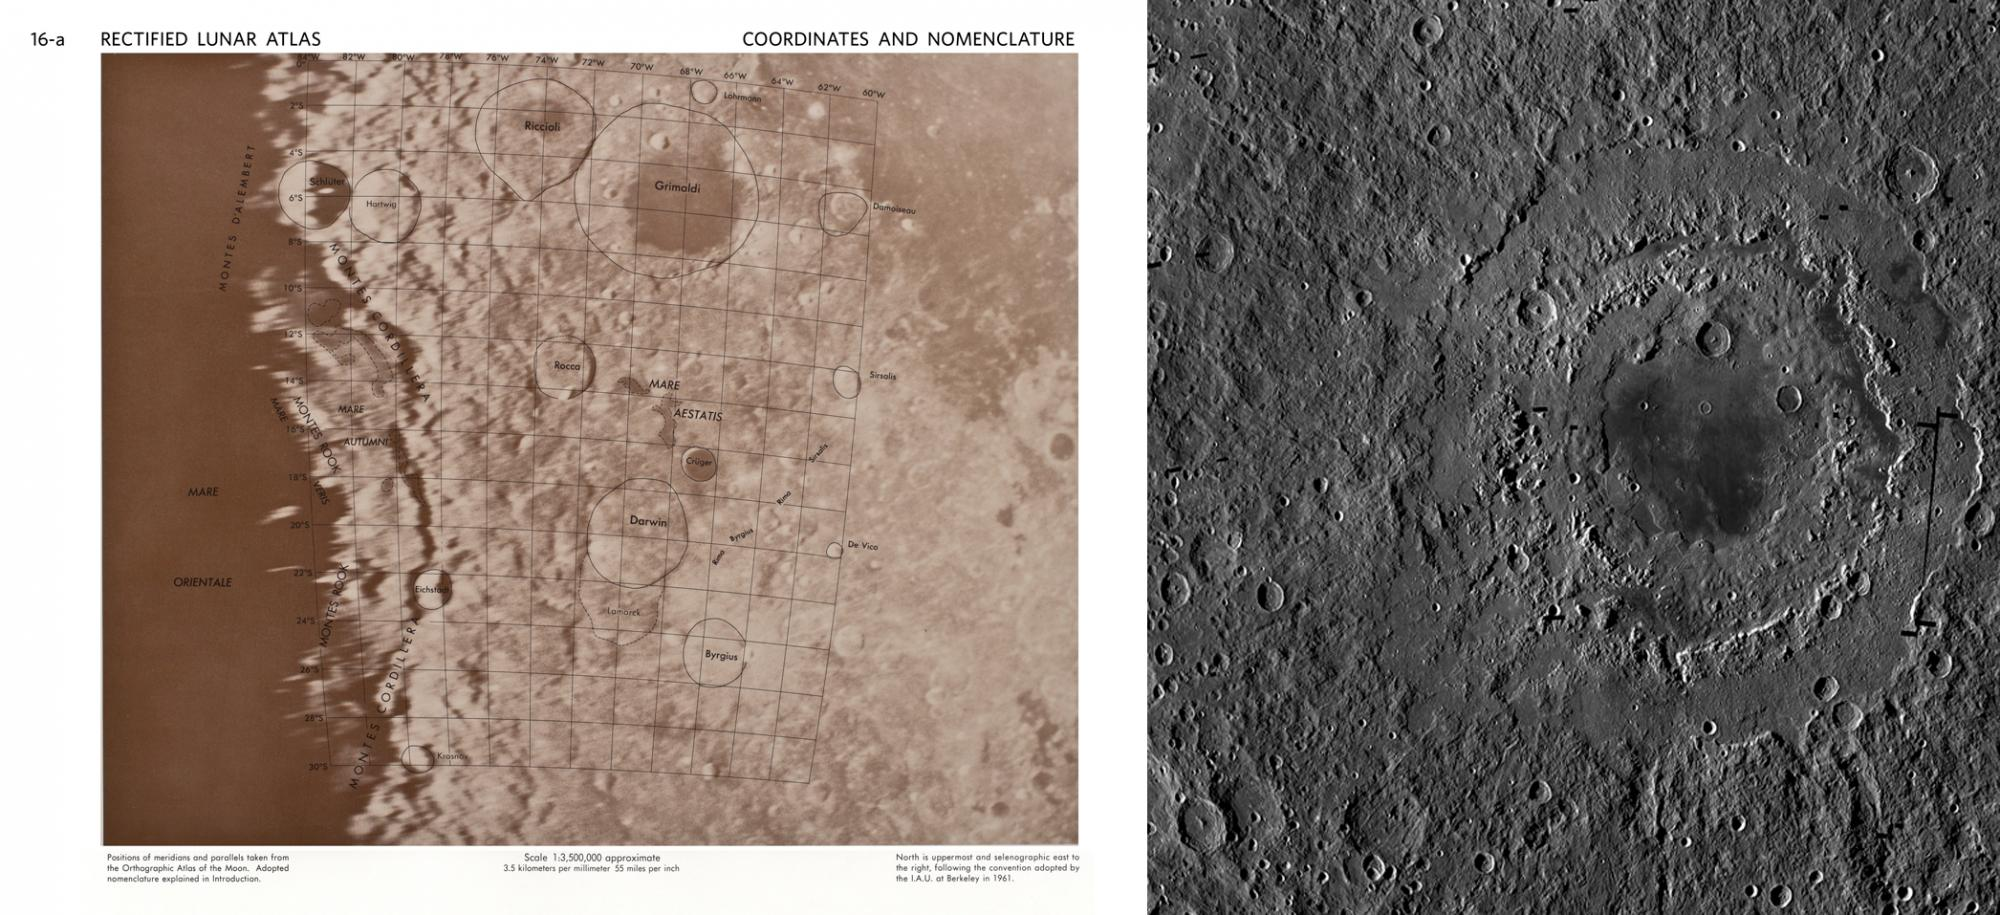 Left: A page from the Rectified Lunar Atlas, showing the edge of the Mare Orientale impact crater, discovered by William Hartmann during his time as a graduate student at the University of Arizona.  Right: The Orientale basin, as imaged by the Lunar Recon